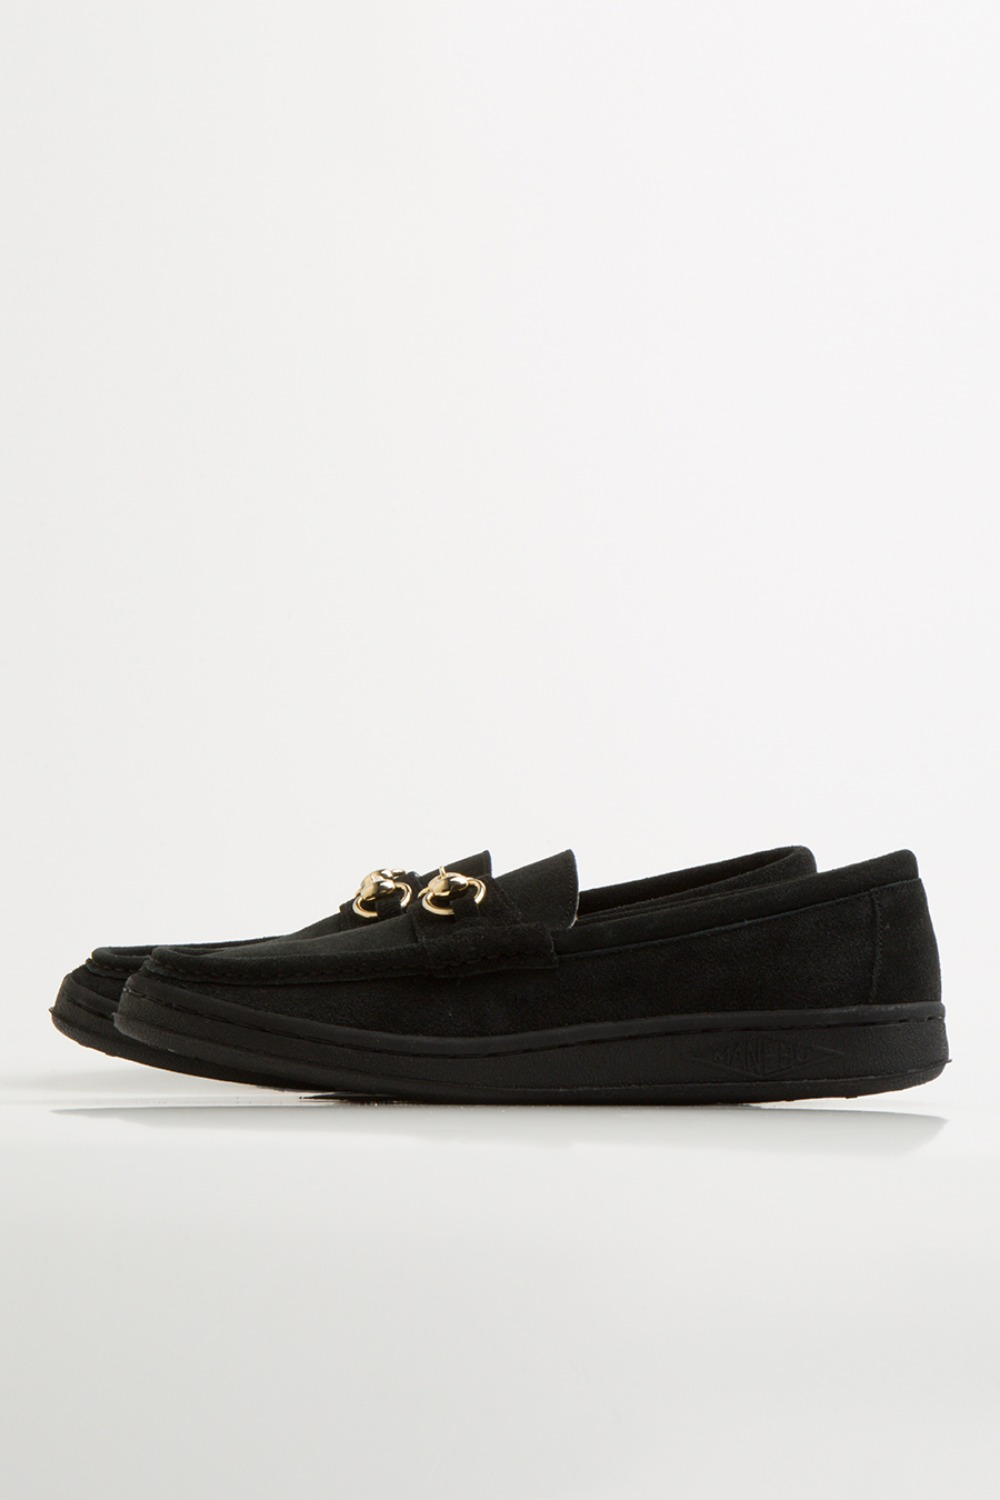 BOTCH SUEDE(MNB-021B-S) BLACK